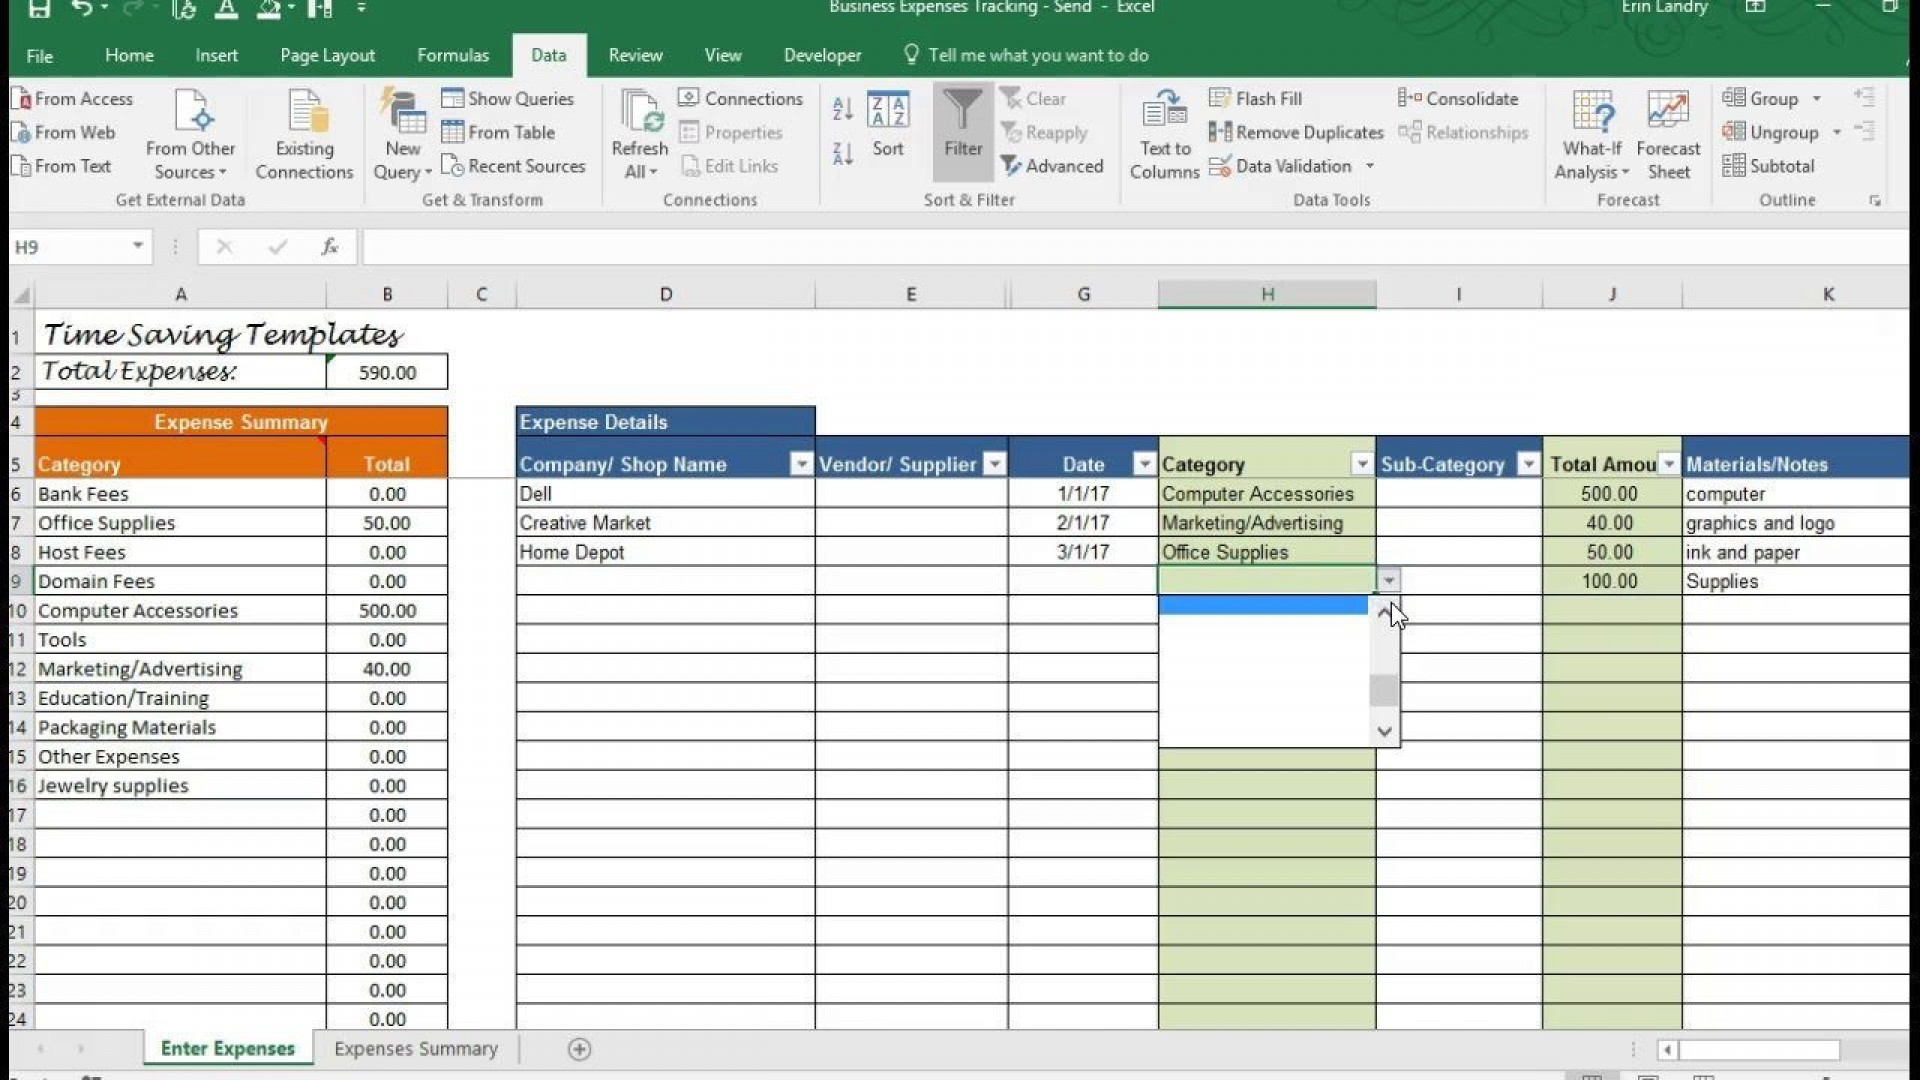 004 Formidable Small Busines Expense Report Template Excel High Def 1920